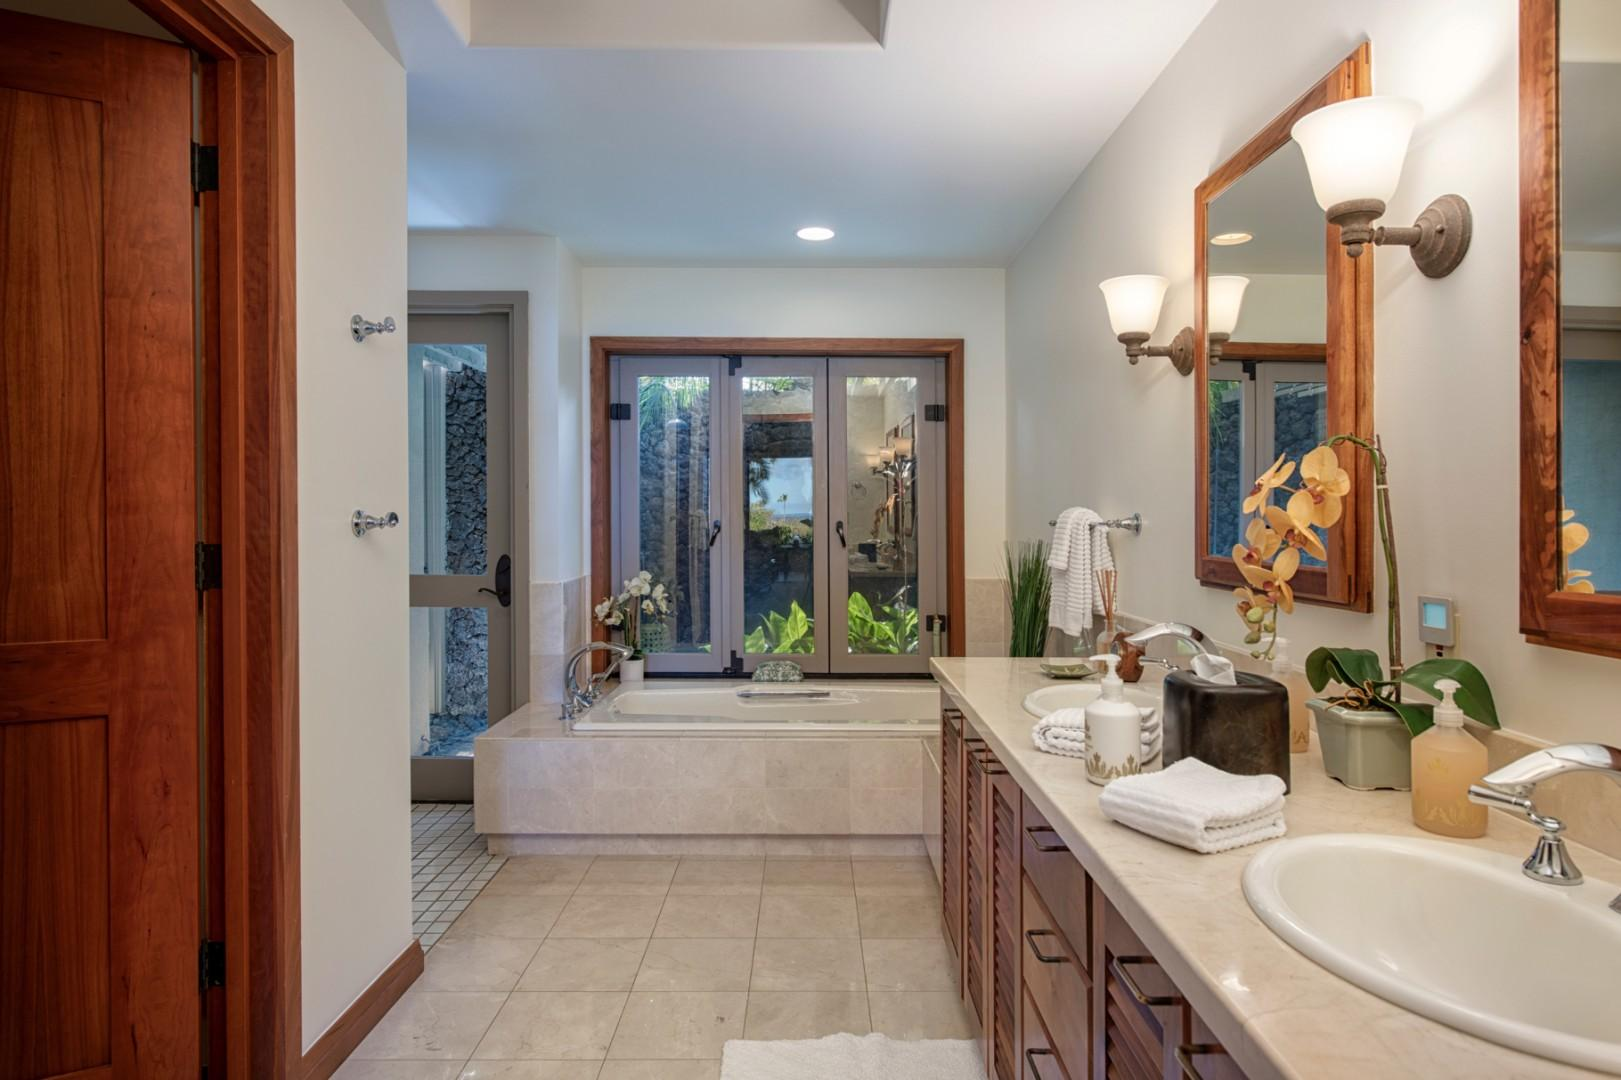 Deluxe master bath w/oversized soaking tub, separate walk-in shower & tropical outdoor shower.